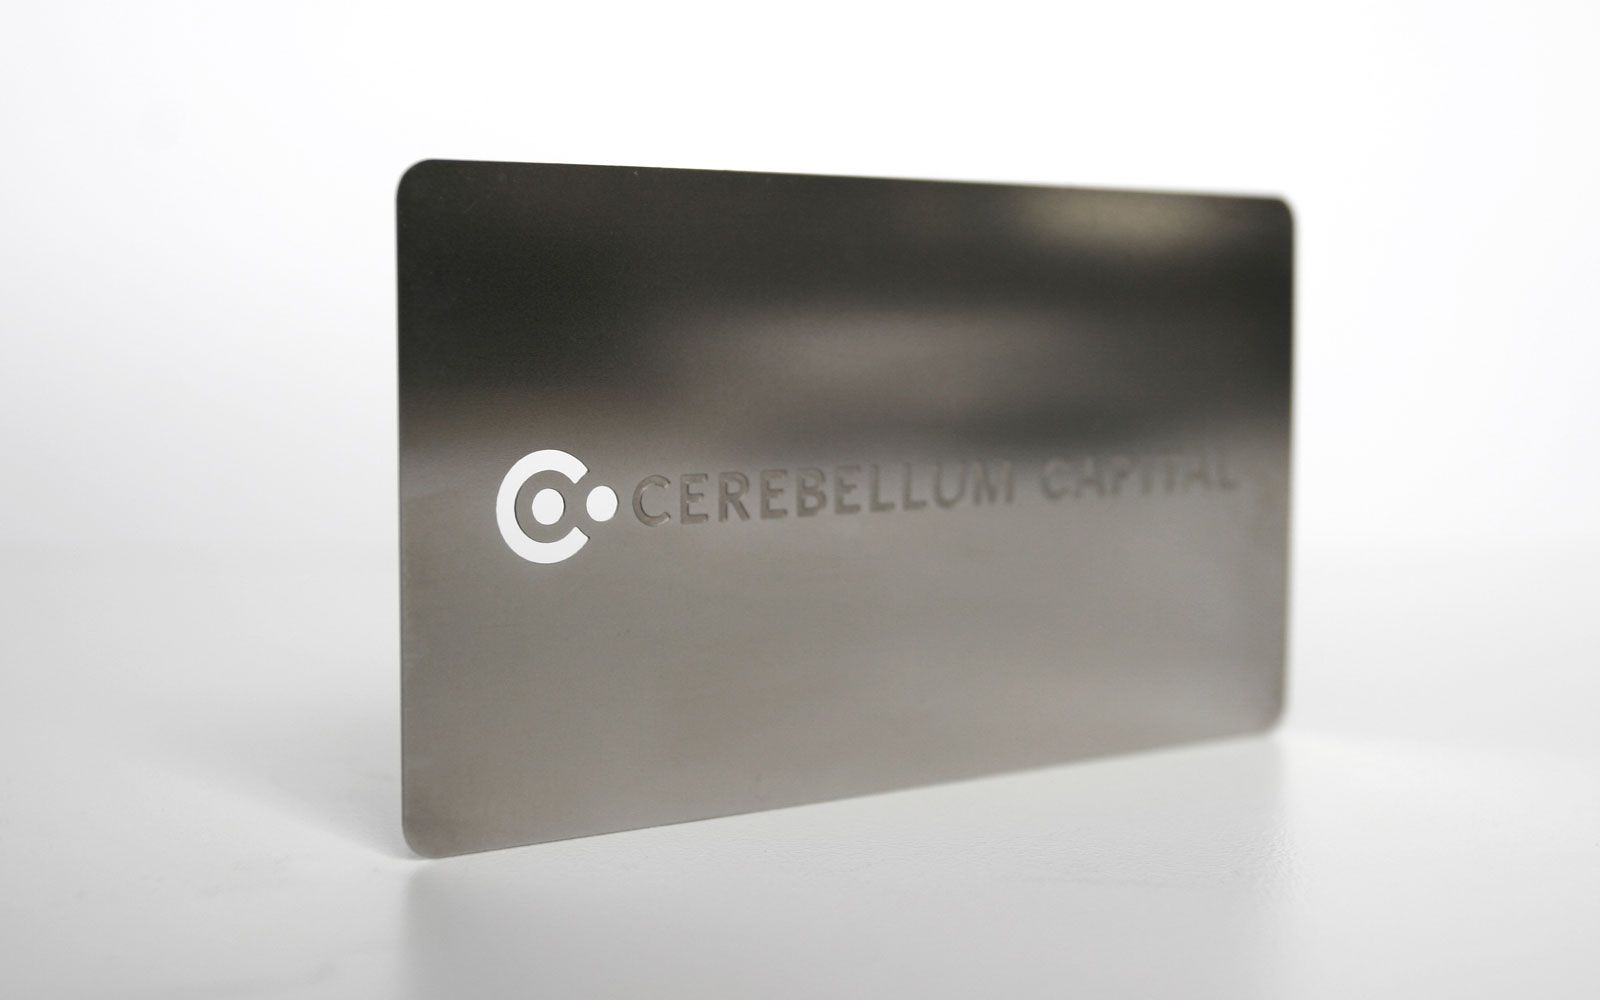 Brand identity for Cerebellum Capital, a hedge fund management firm whose investment programs are continuously designed, executed, and improved by a software system based on techniques from statistical machine learning